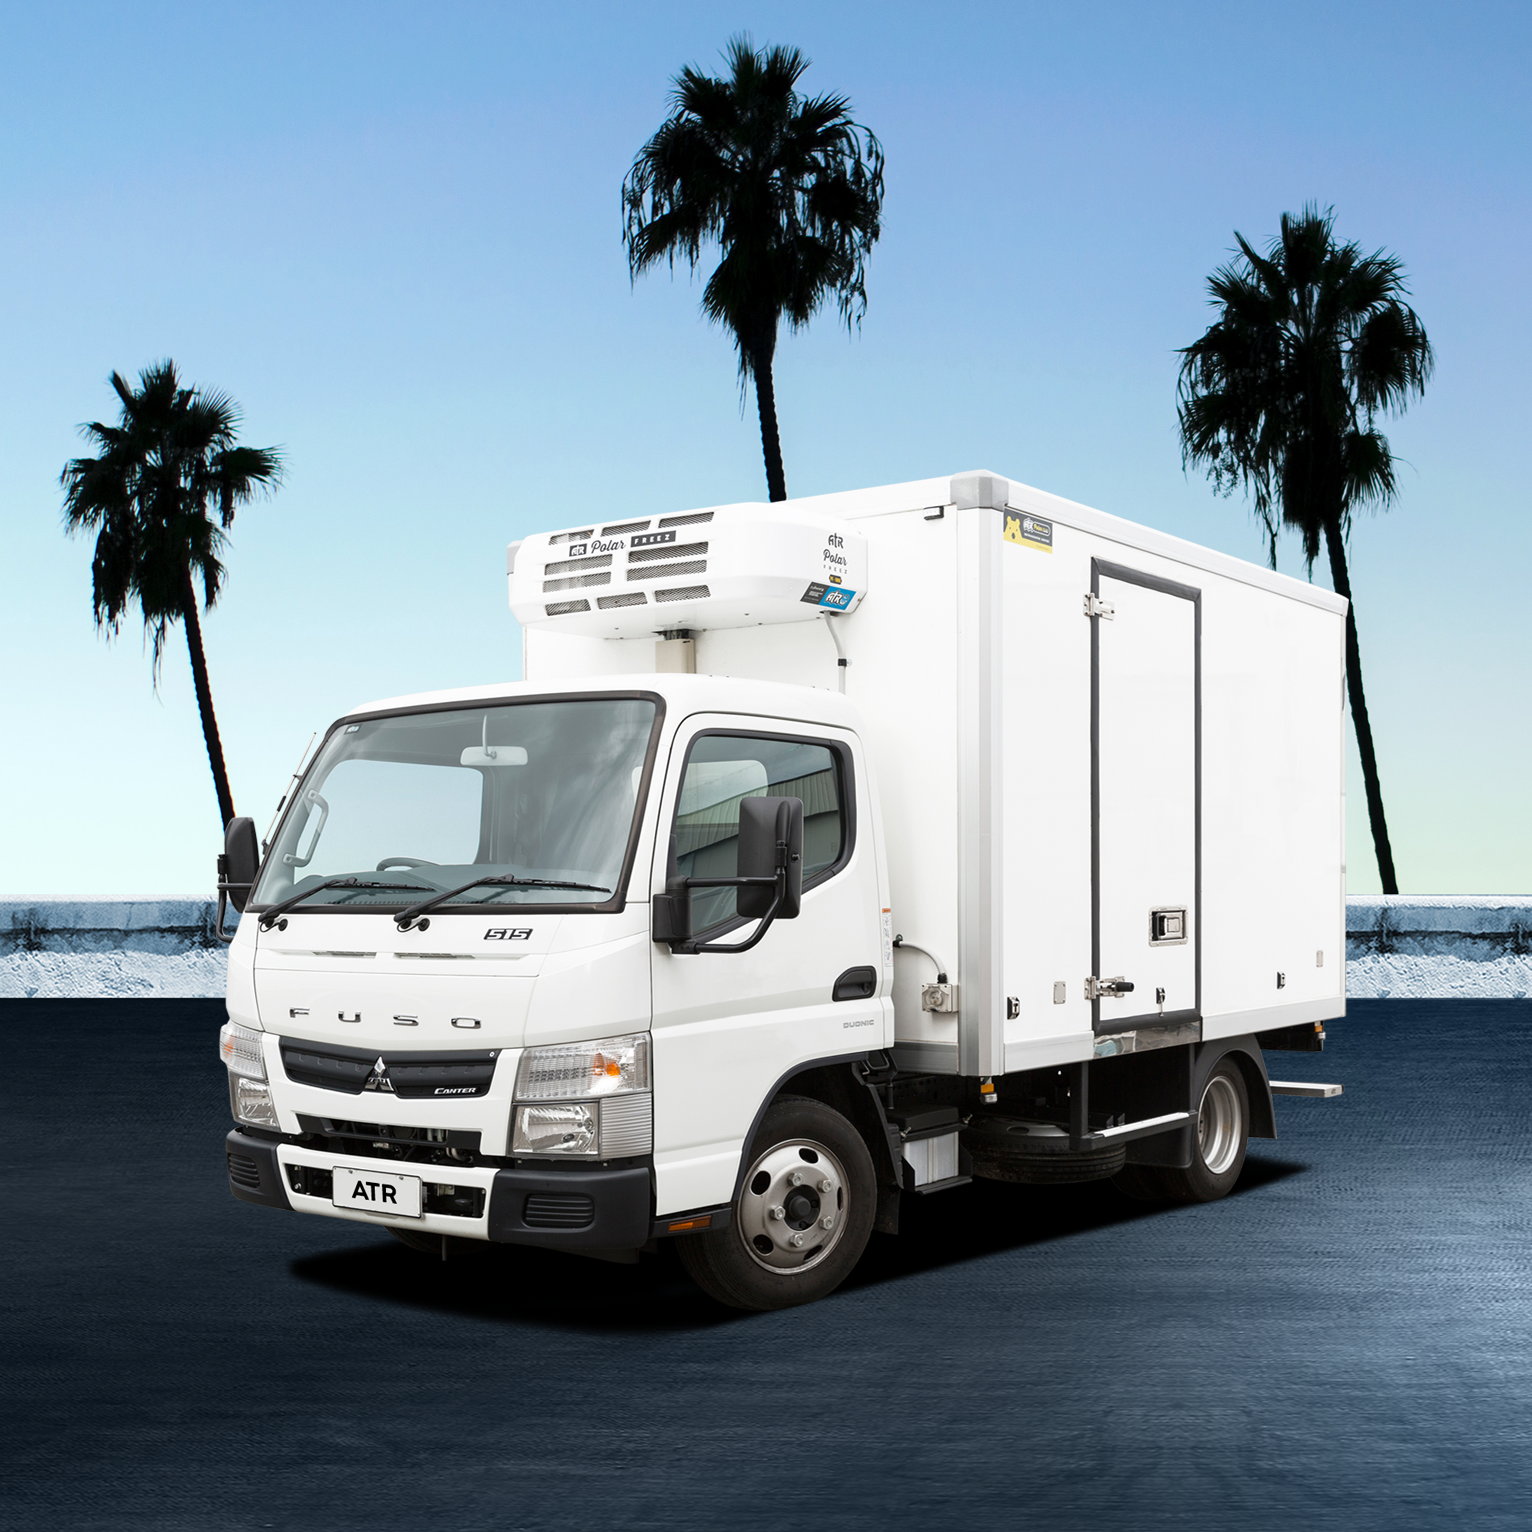 ATR-refrigerated-truck-installations.png